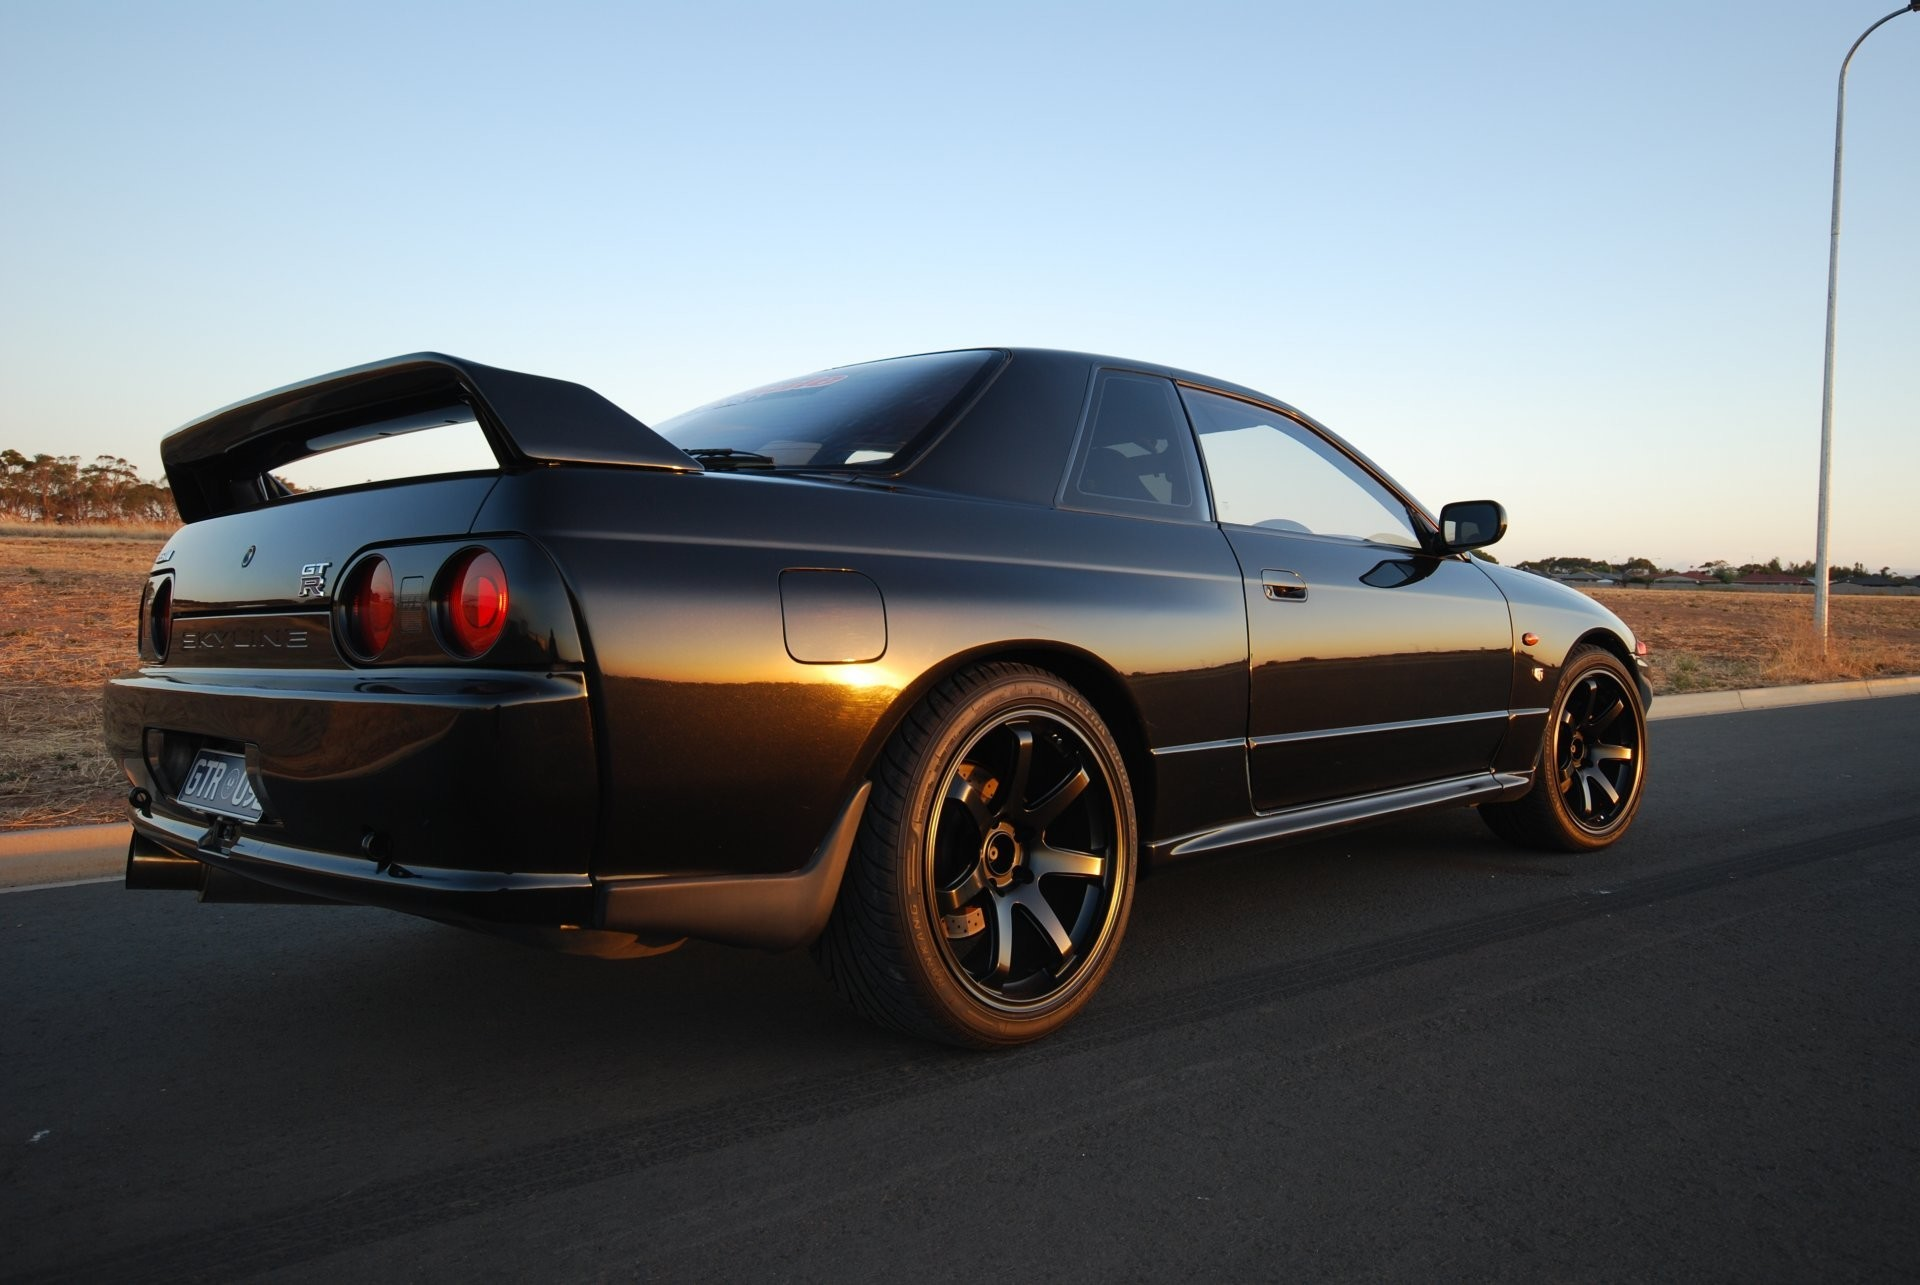 1920x1285 nissan skyline gt-r r32 coupe black japan wallpapers drift jdm nissan  skyline jeet -